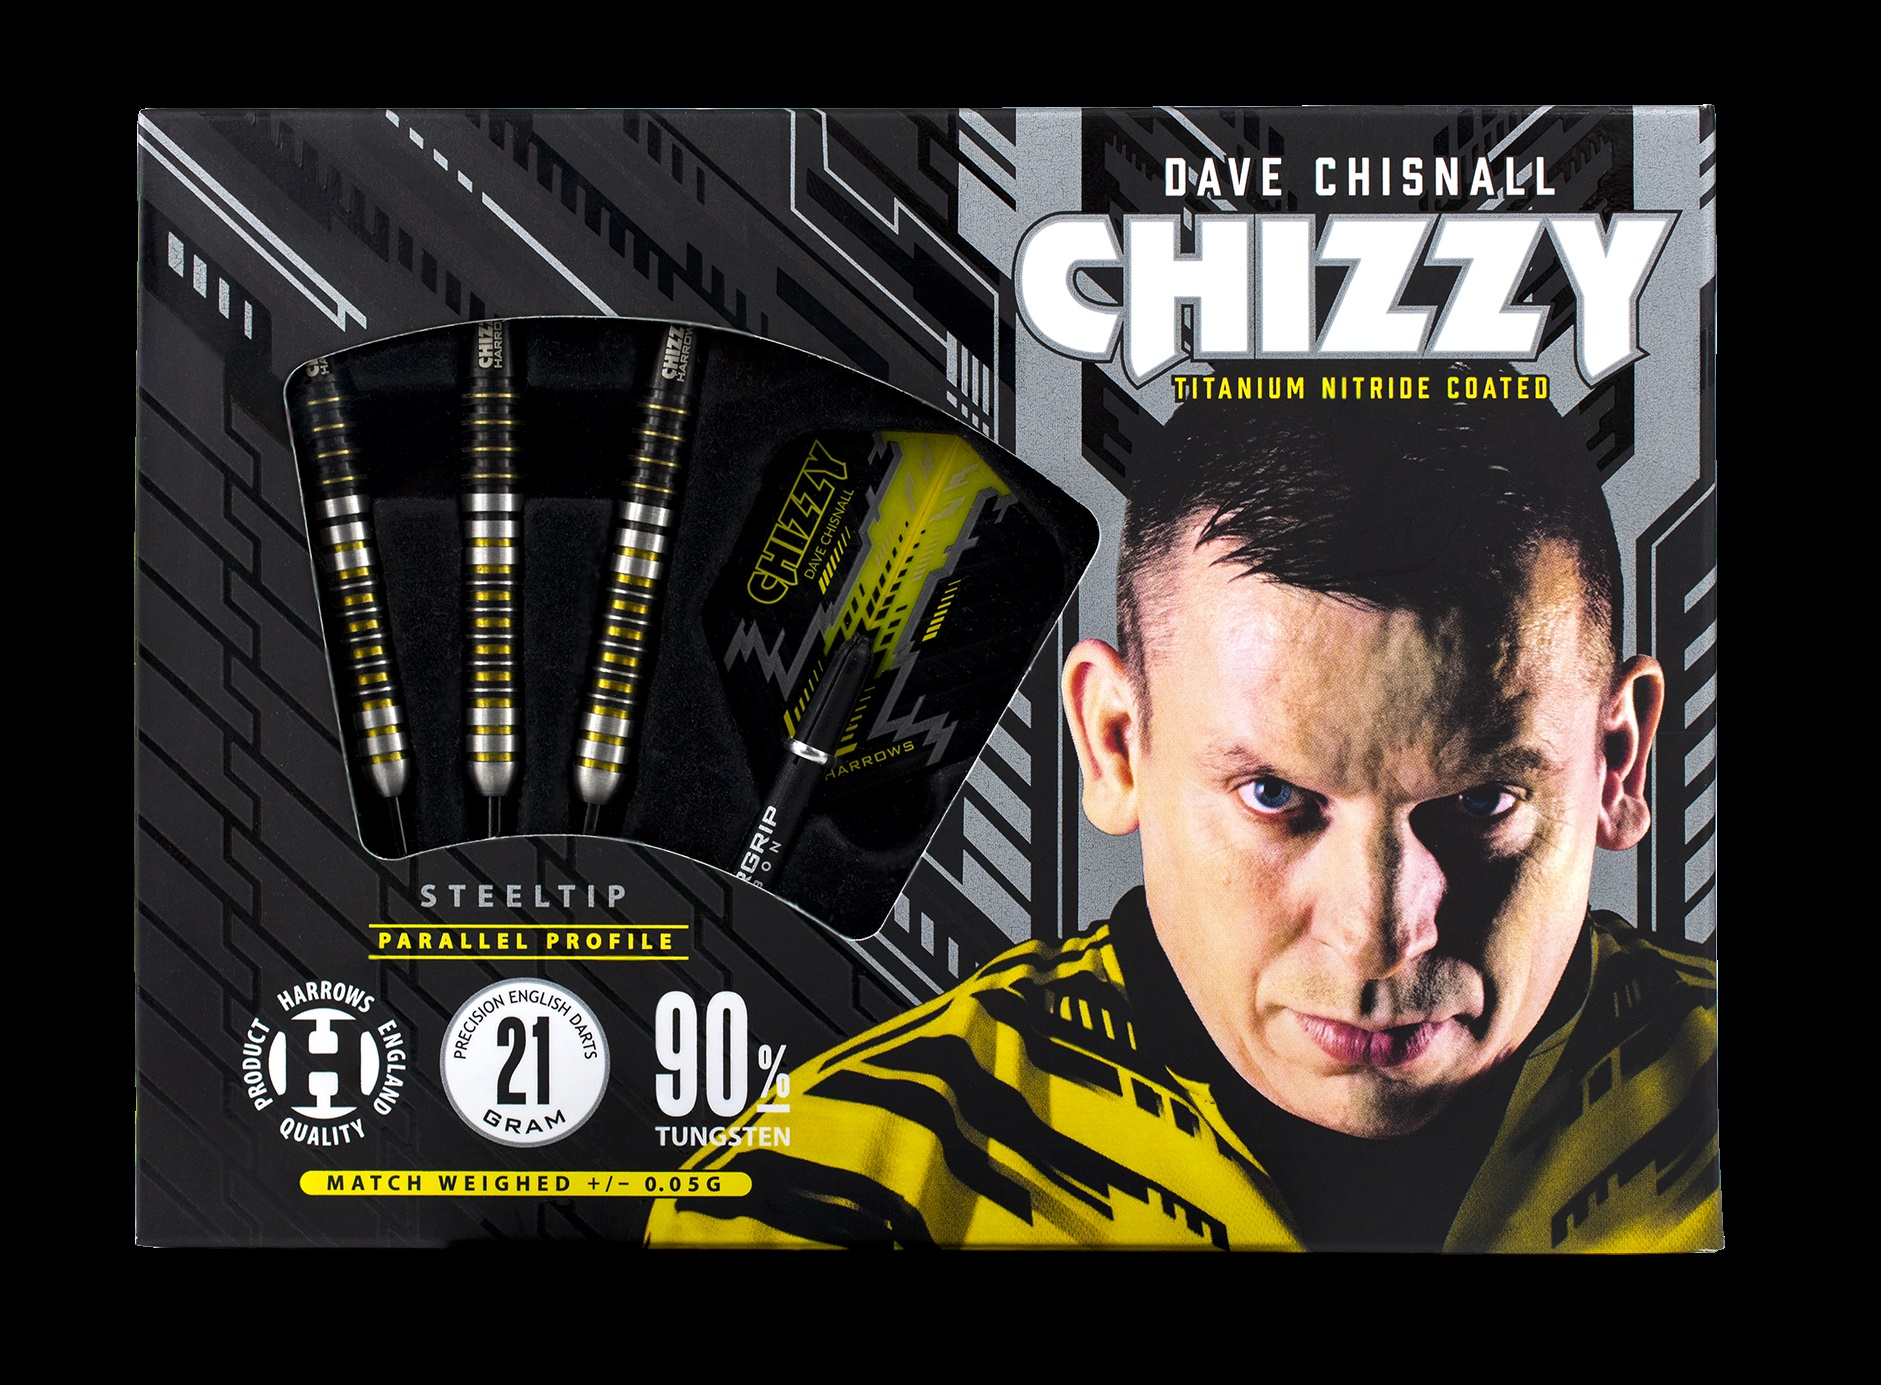 HARROWS Dave Chisnall Chizzy Steel-Dart in 22g